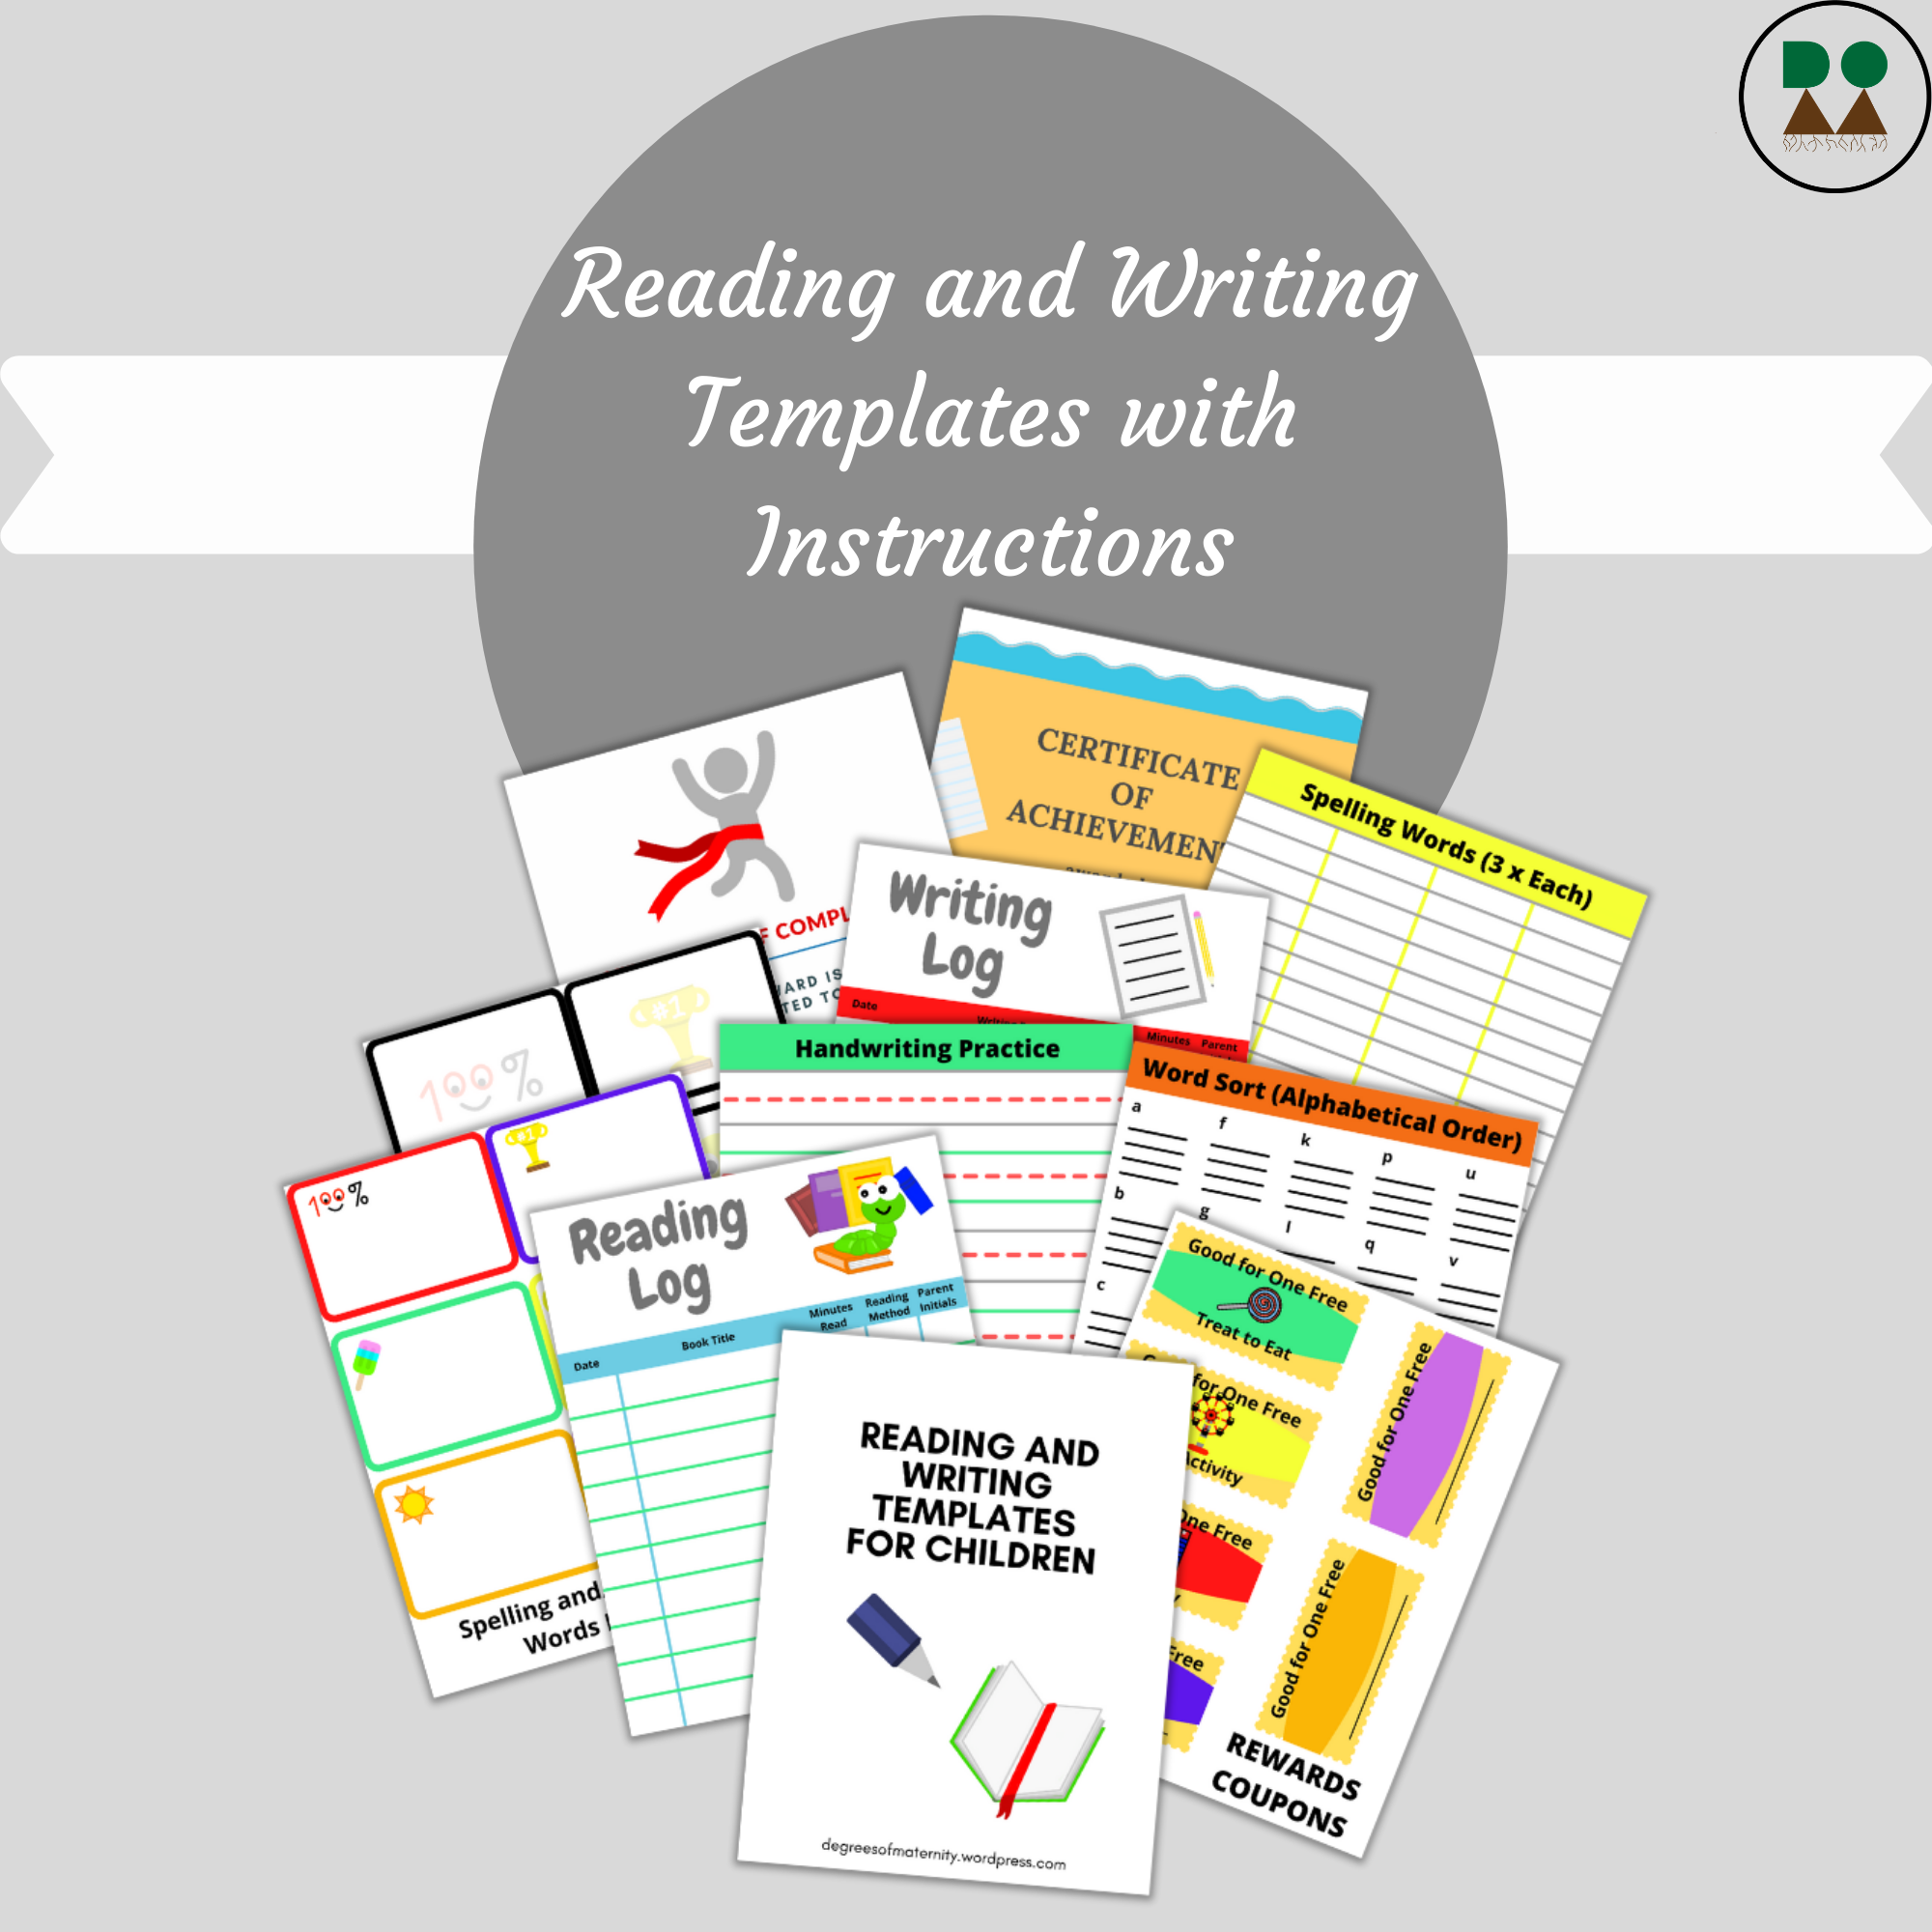 reading-and-writing-templates-with-instructions